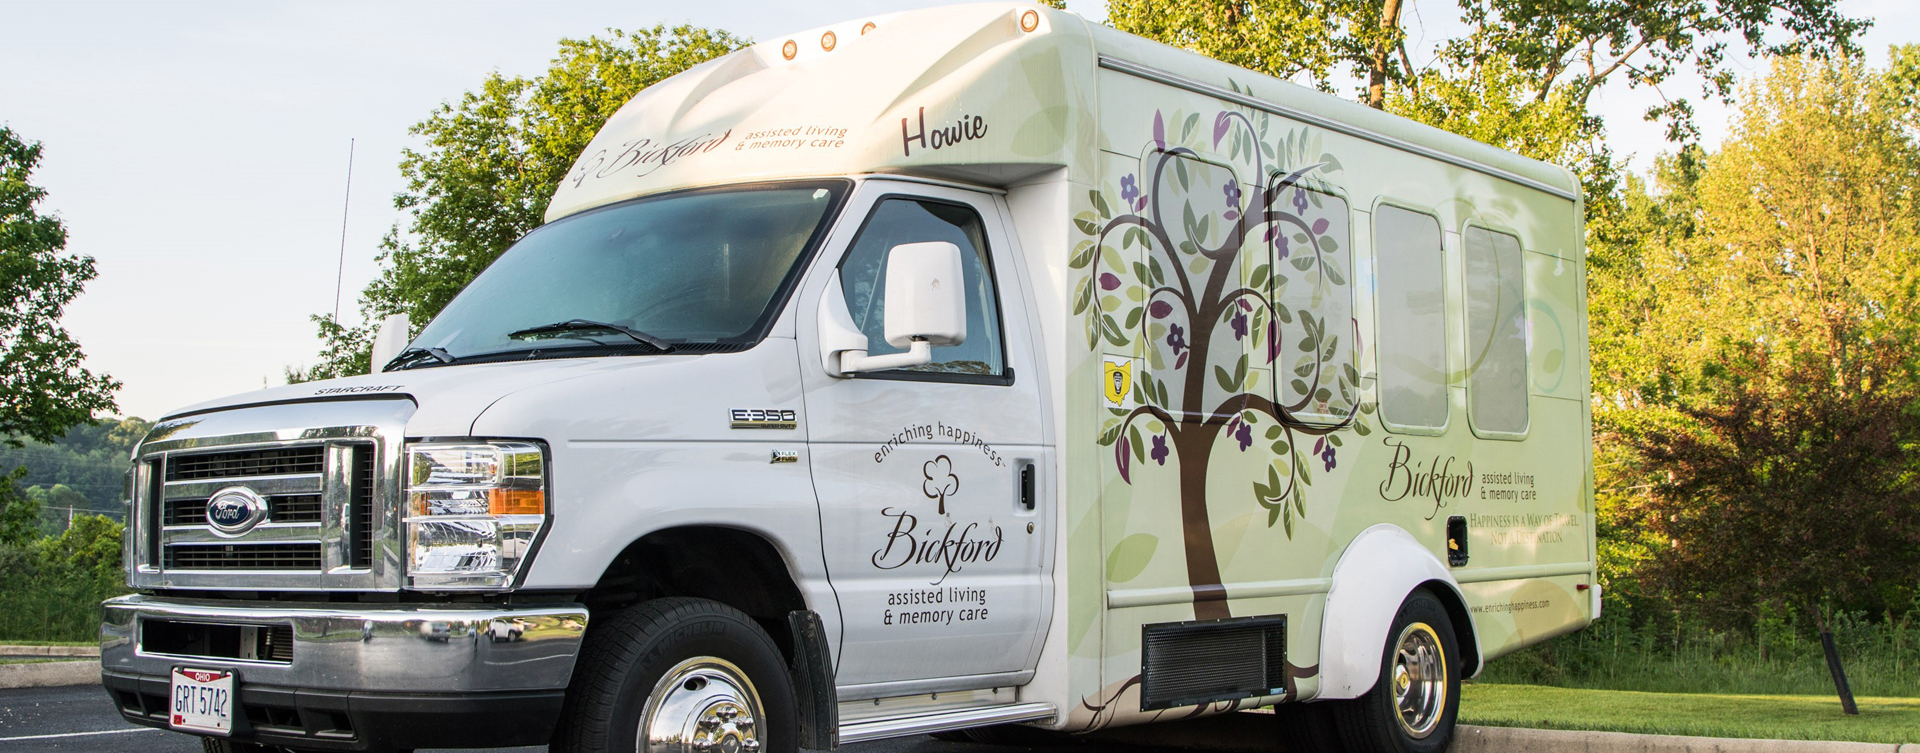 Participate in community outings aboard the Bickford bus HOWIE at Bickford of Burlington